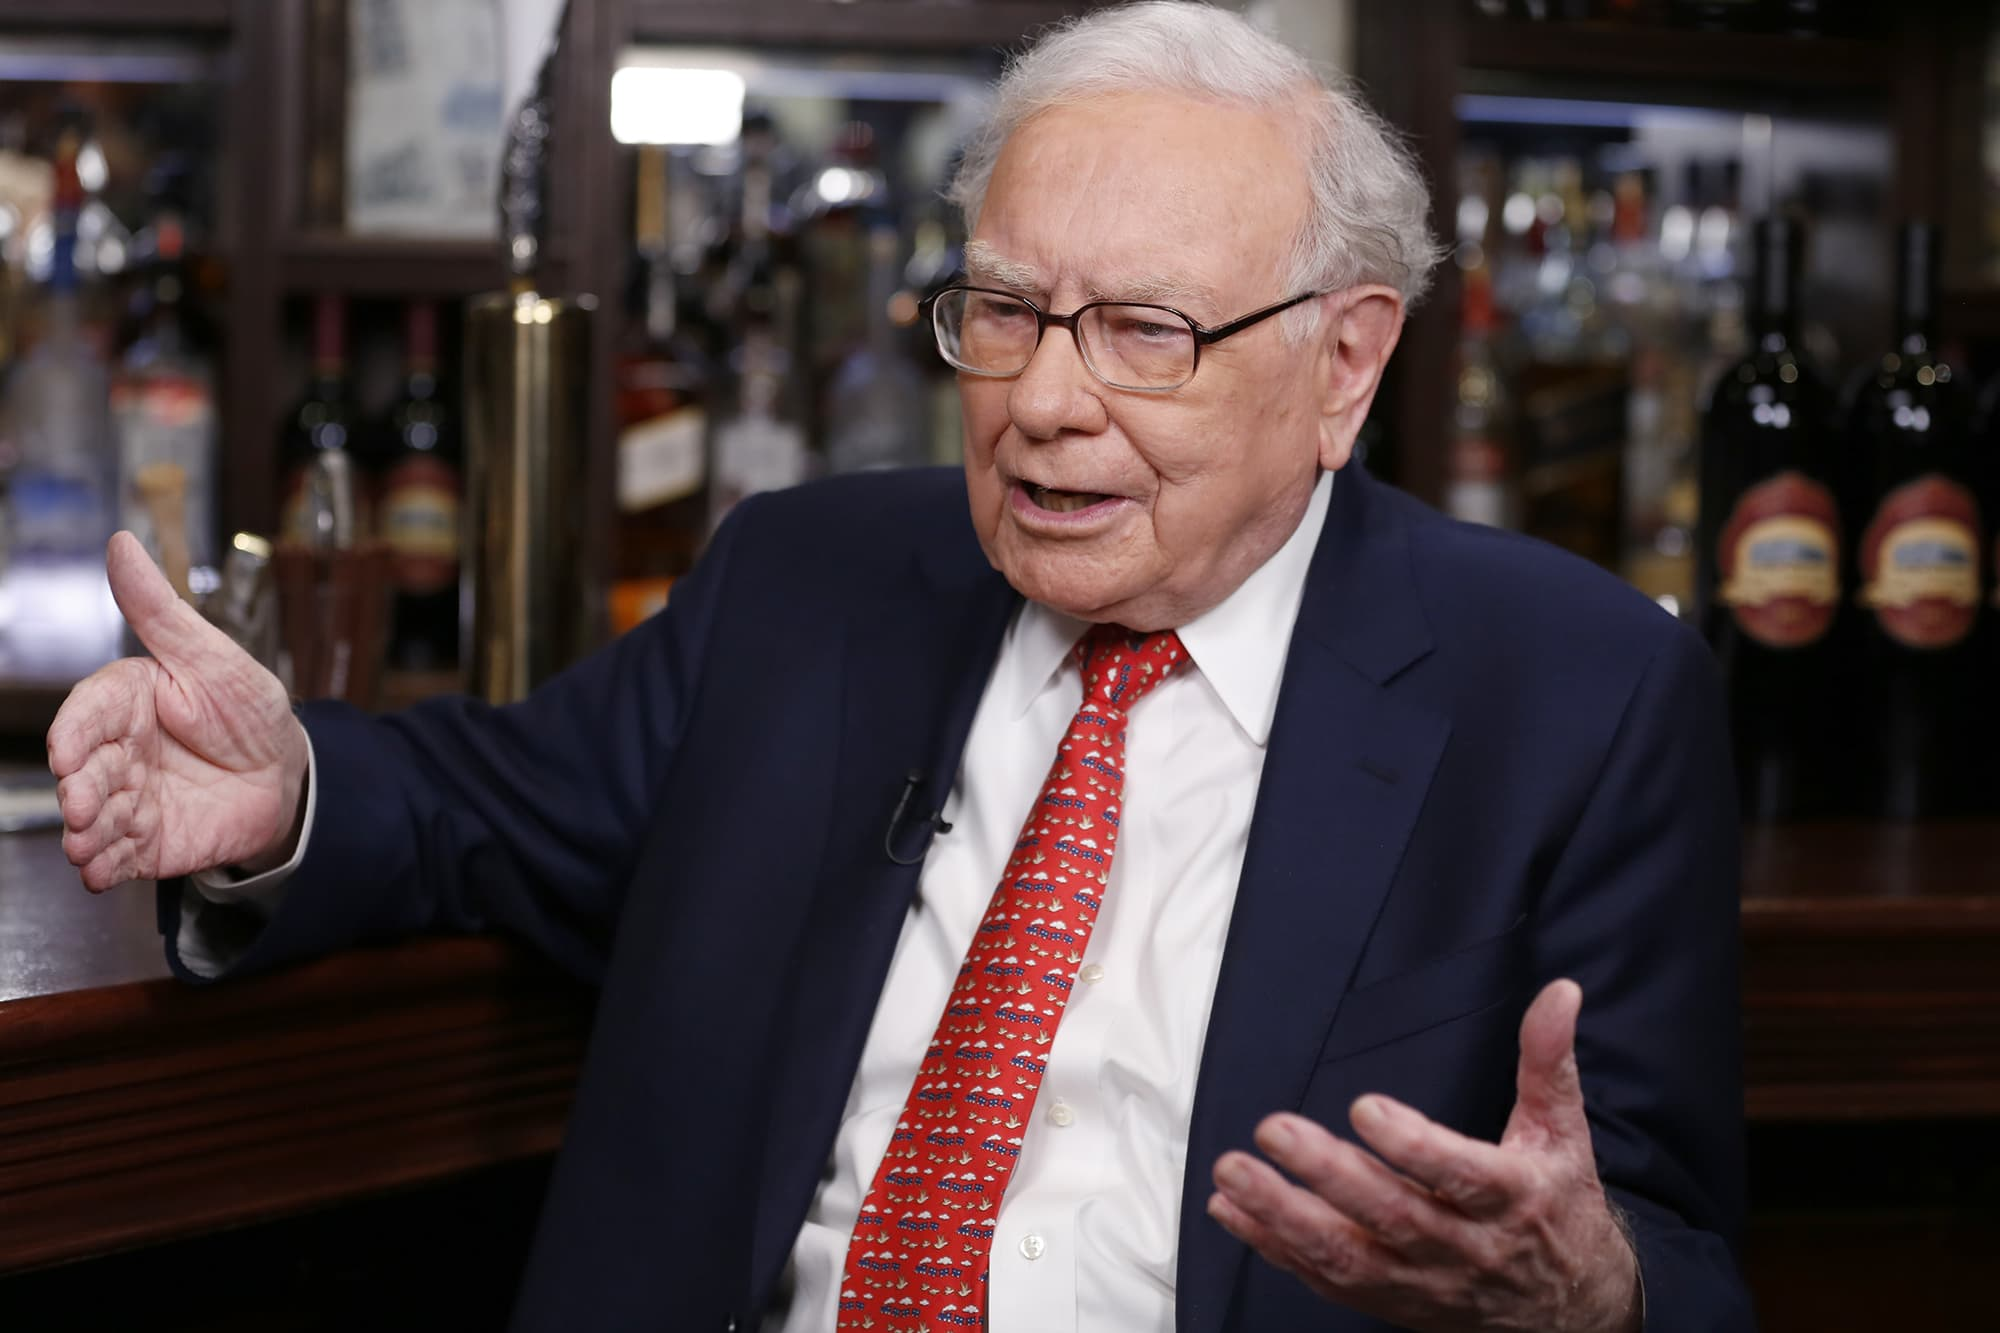 Here are the stocks Warren Buffett says he's betting on for the long run